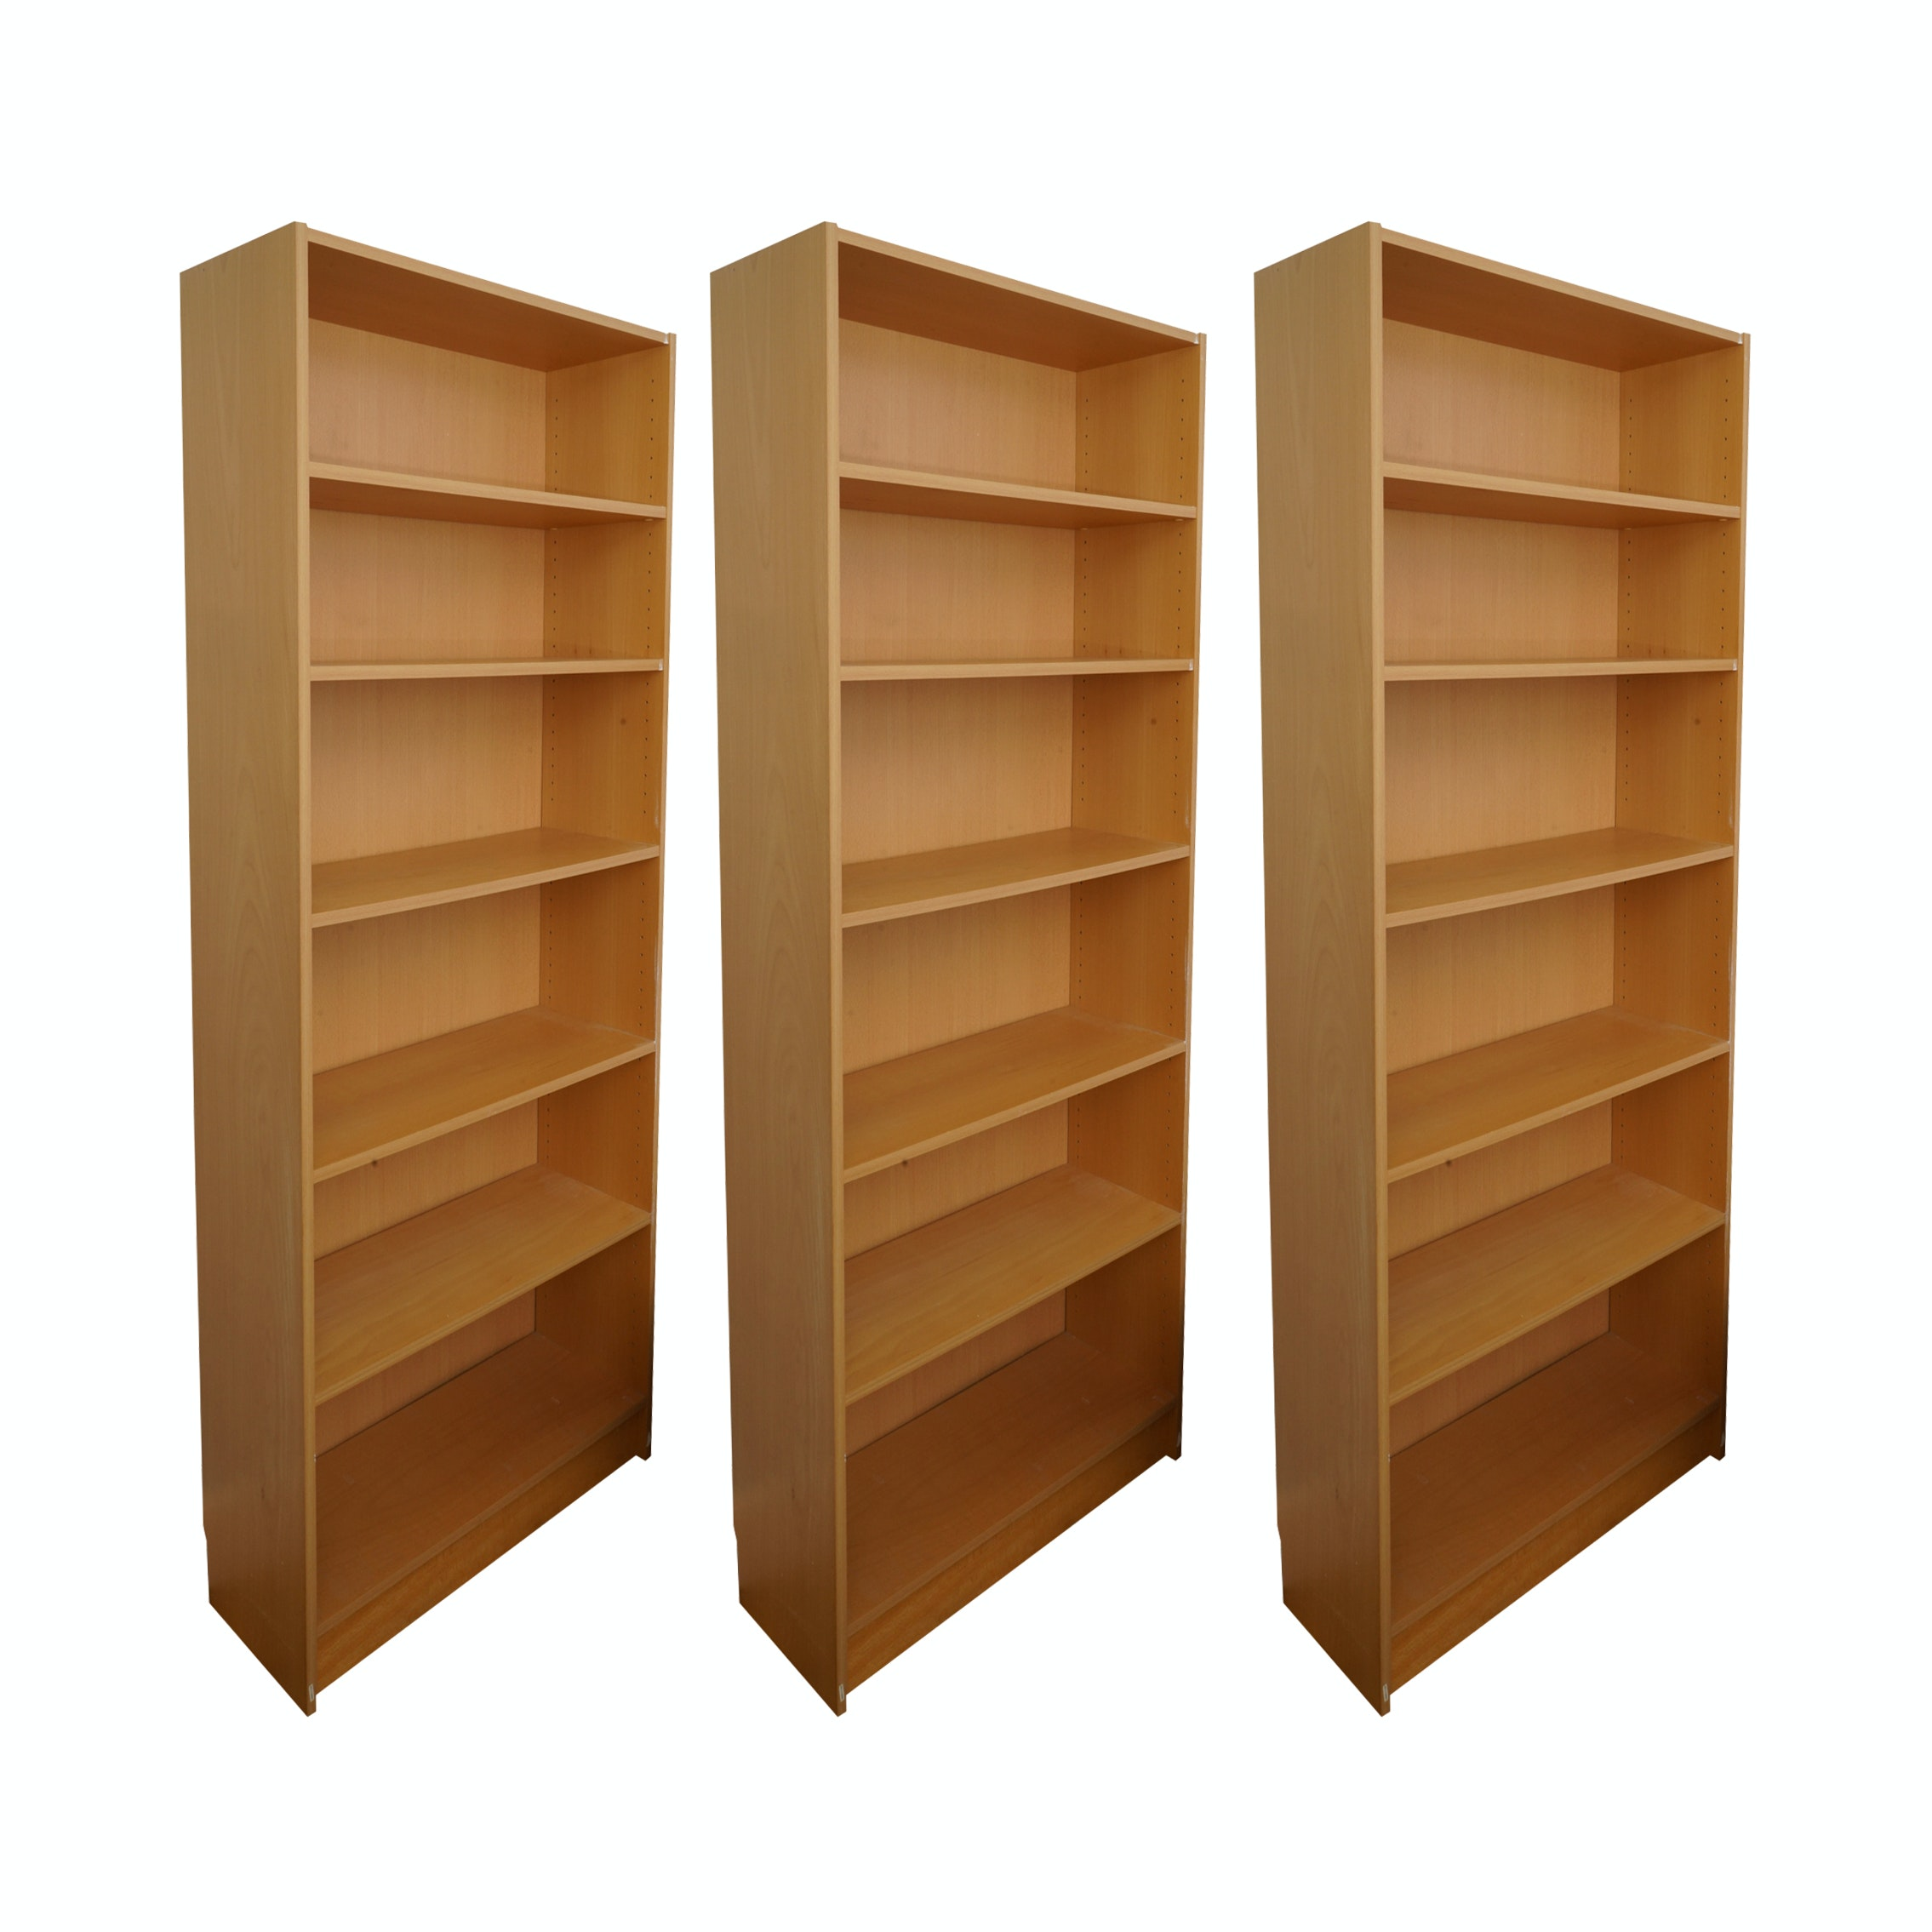 Three Bookcases with Adjustable Shelving